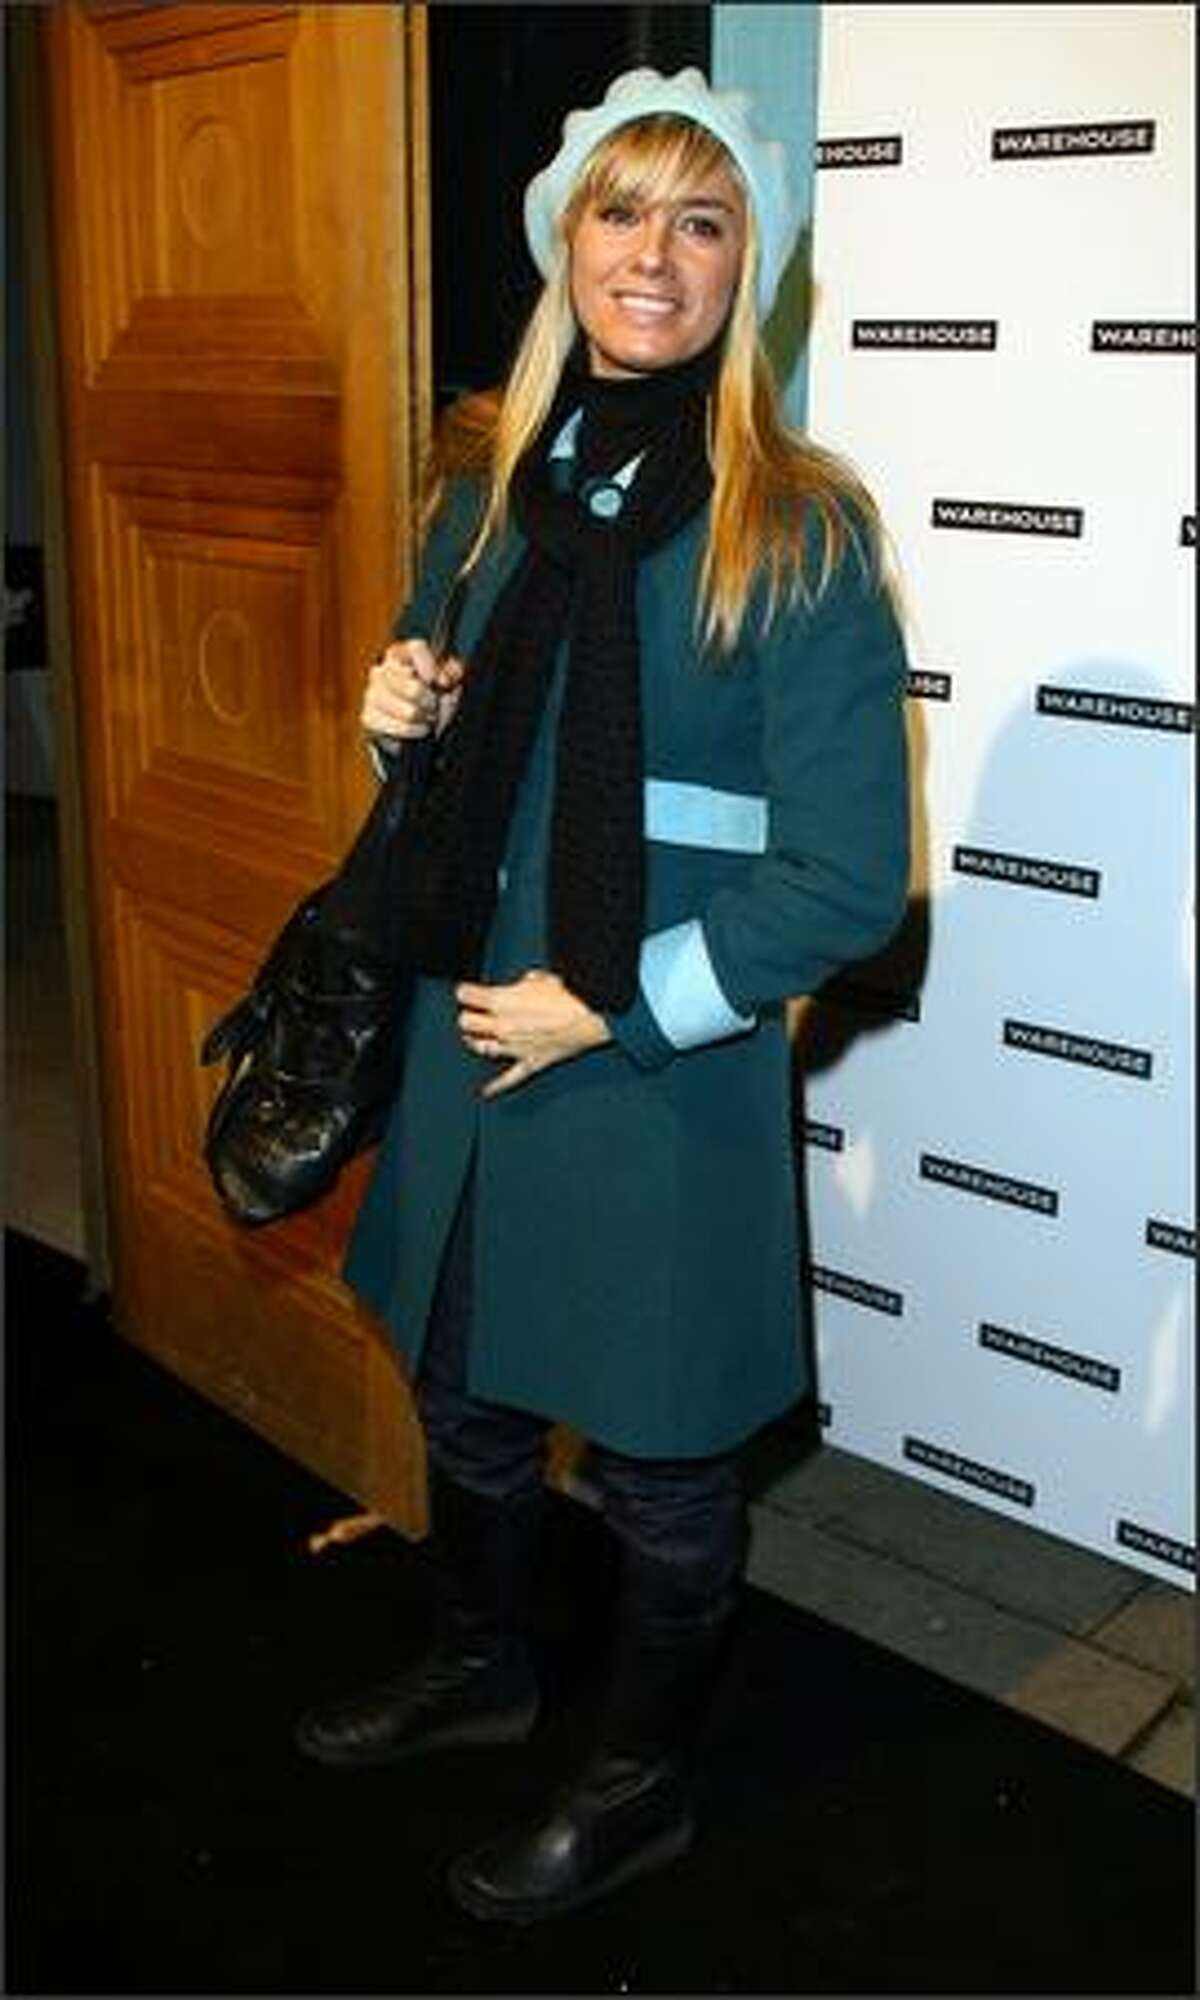 Tamzin Outhwaite arrives at the Warehouse Preview Spring-Summer 08 Collection on Tuesday in London, England.